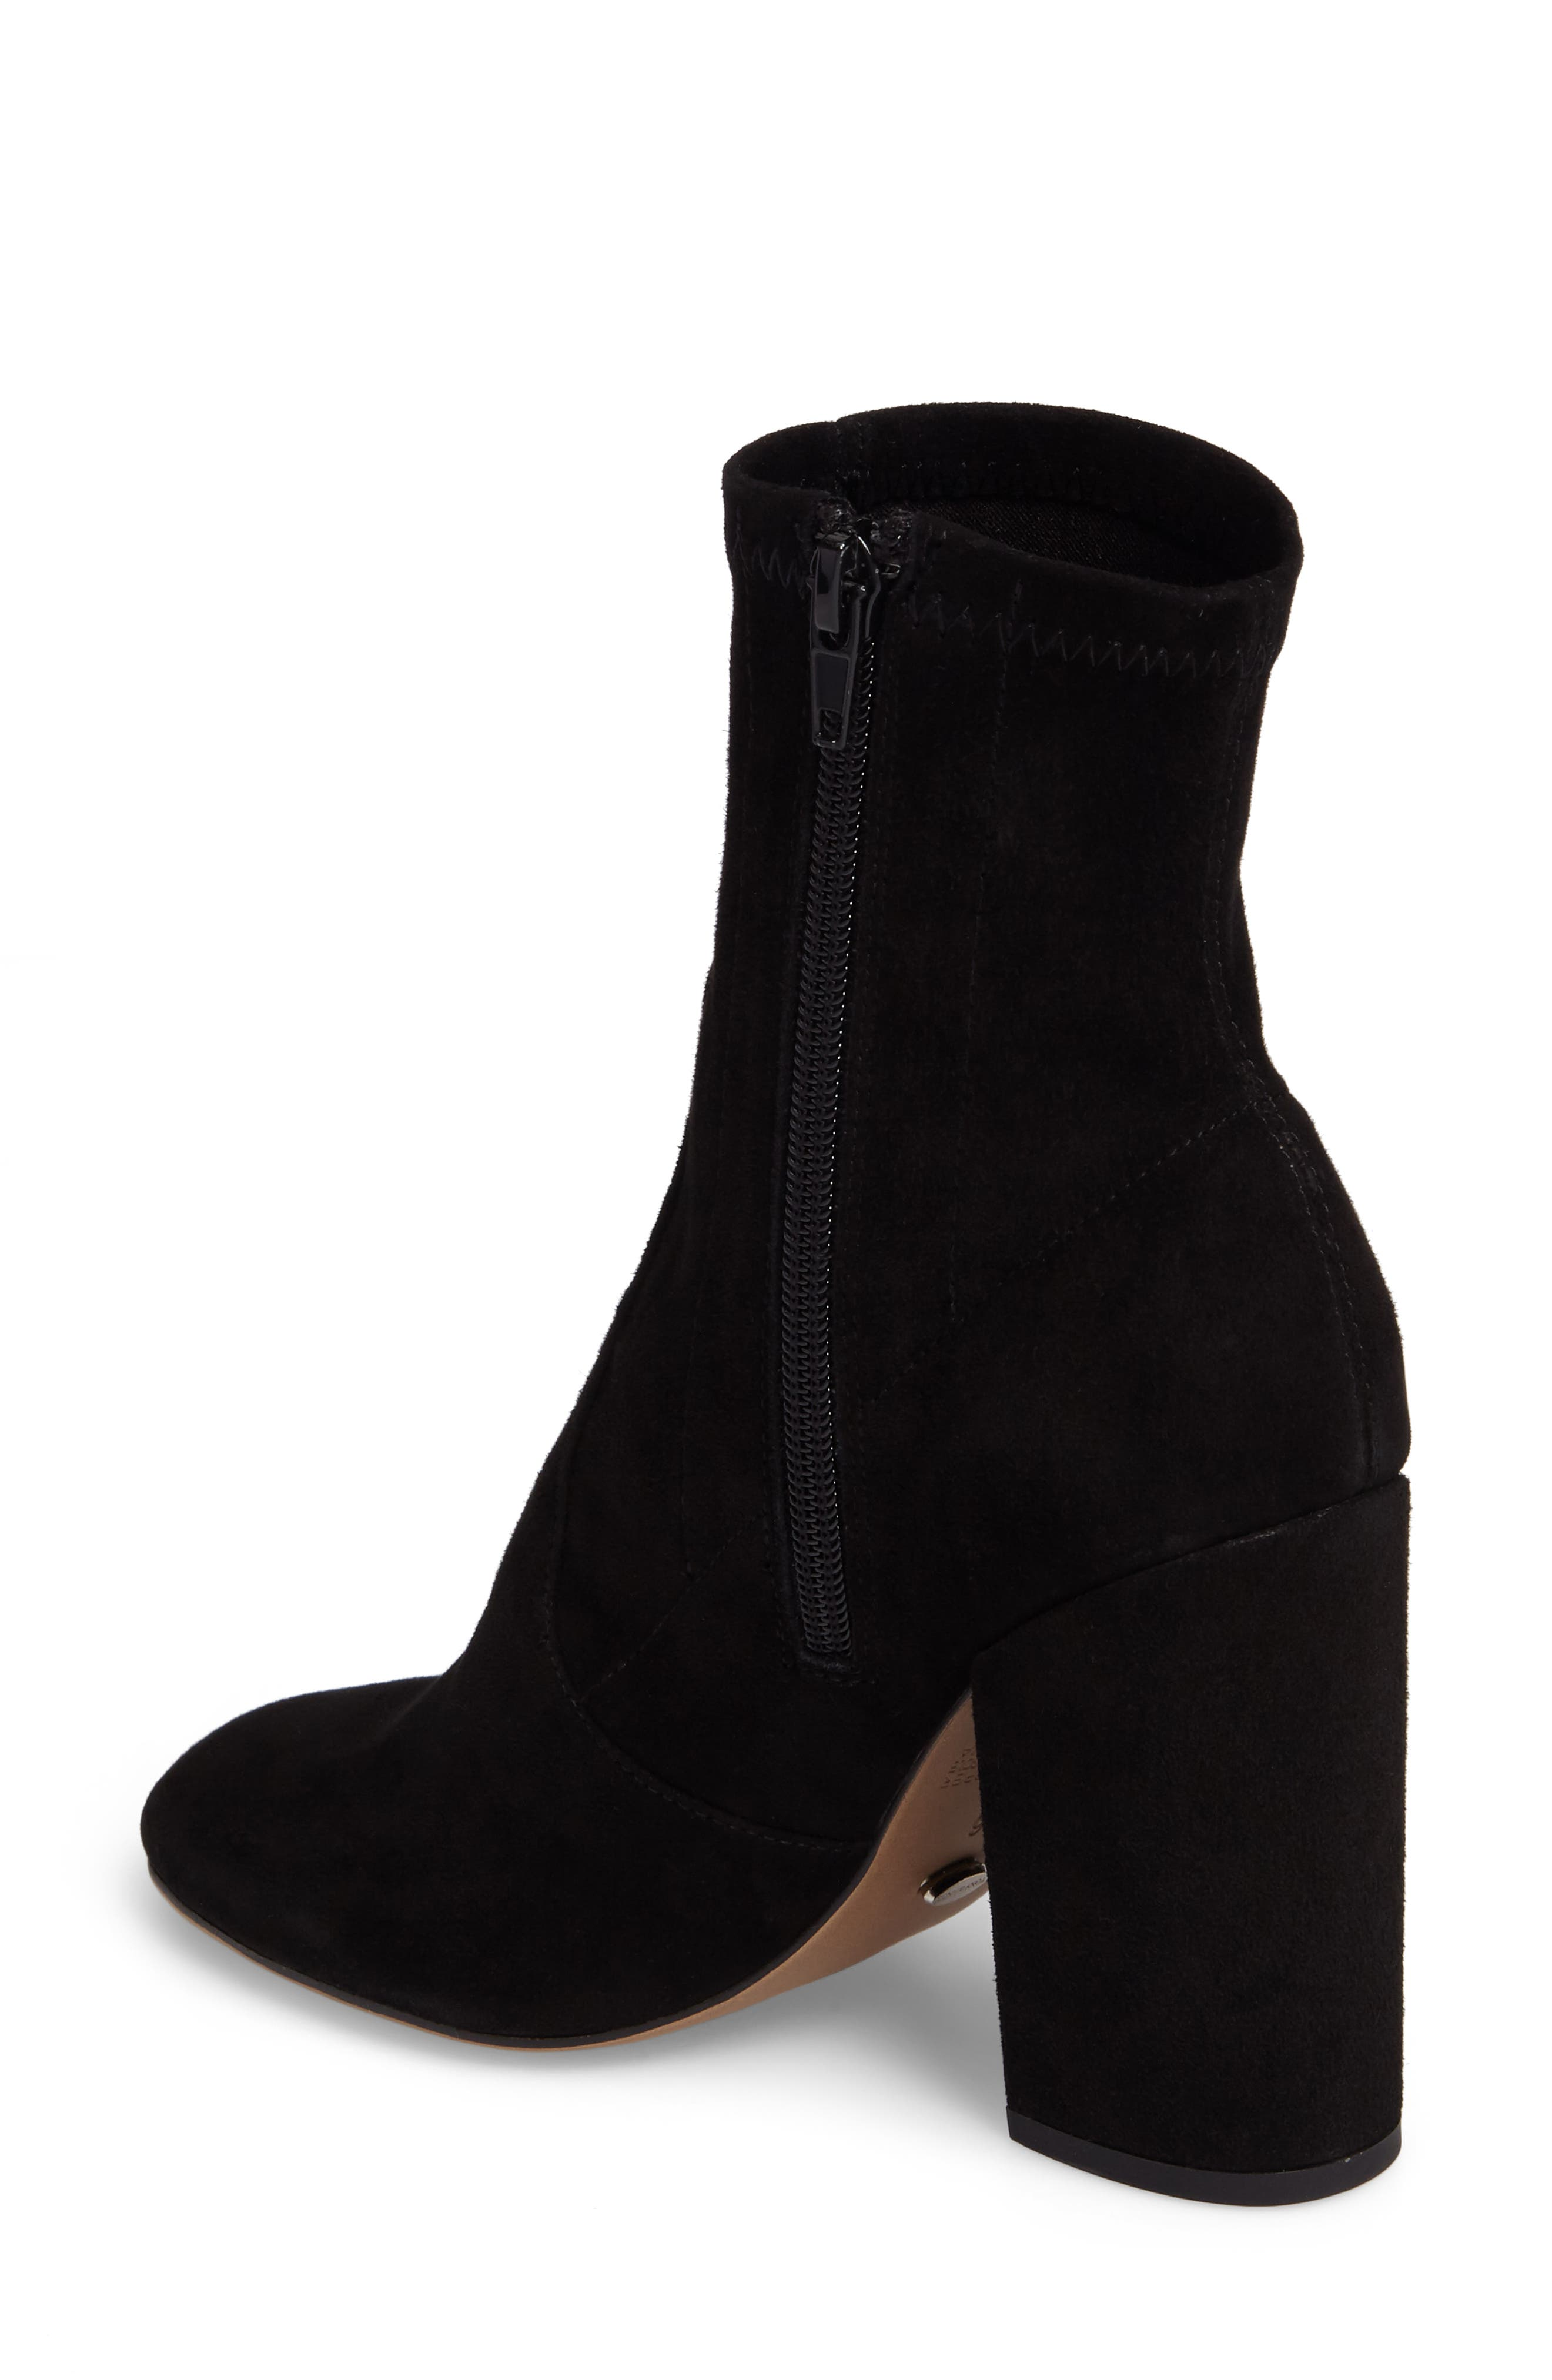 Alaia Block Heel Bootie,                             Alternate thumbnail 2, color,                             Black Suede